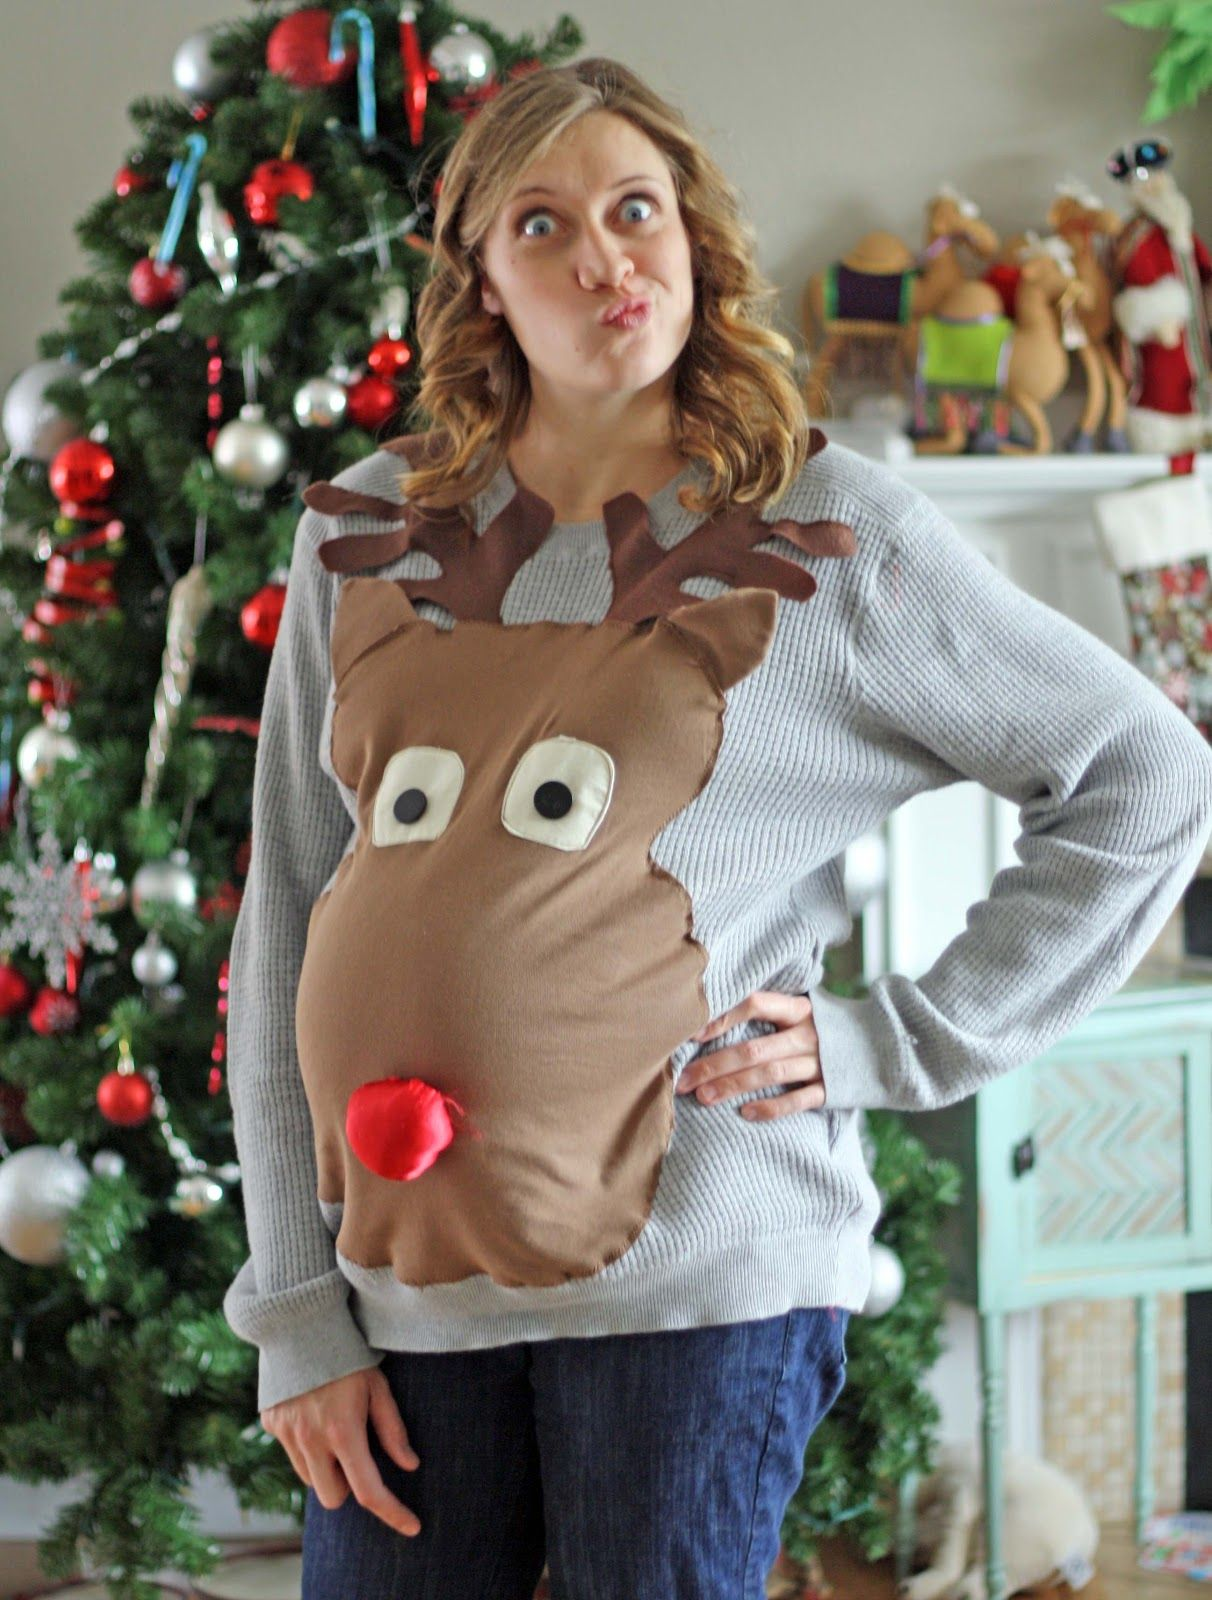 Ugly sweater christmas party maternity style ba ha ha ugly sweater christmas party maternity style ba ha ha ombrellifo Images